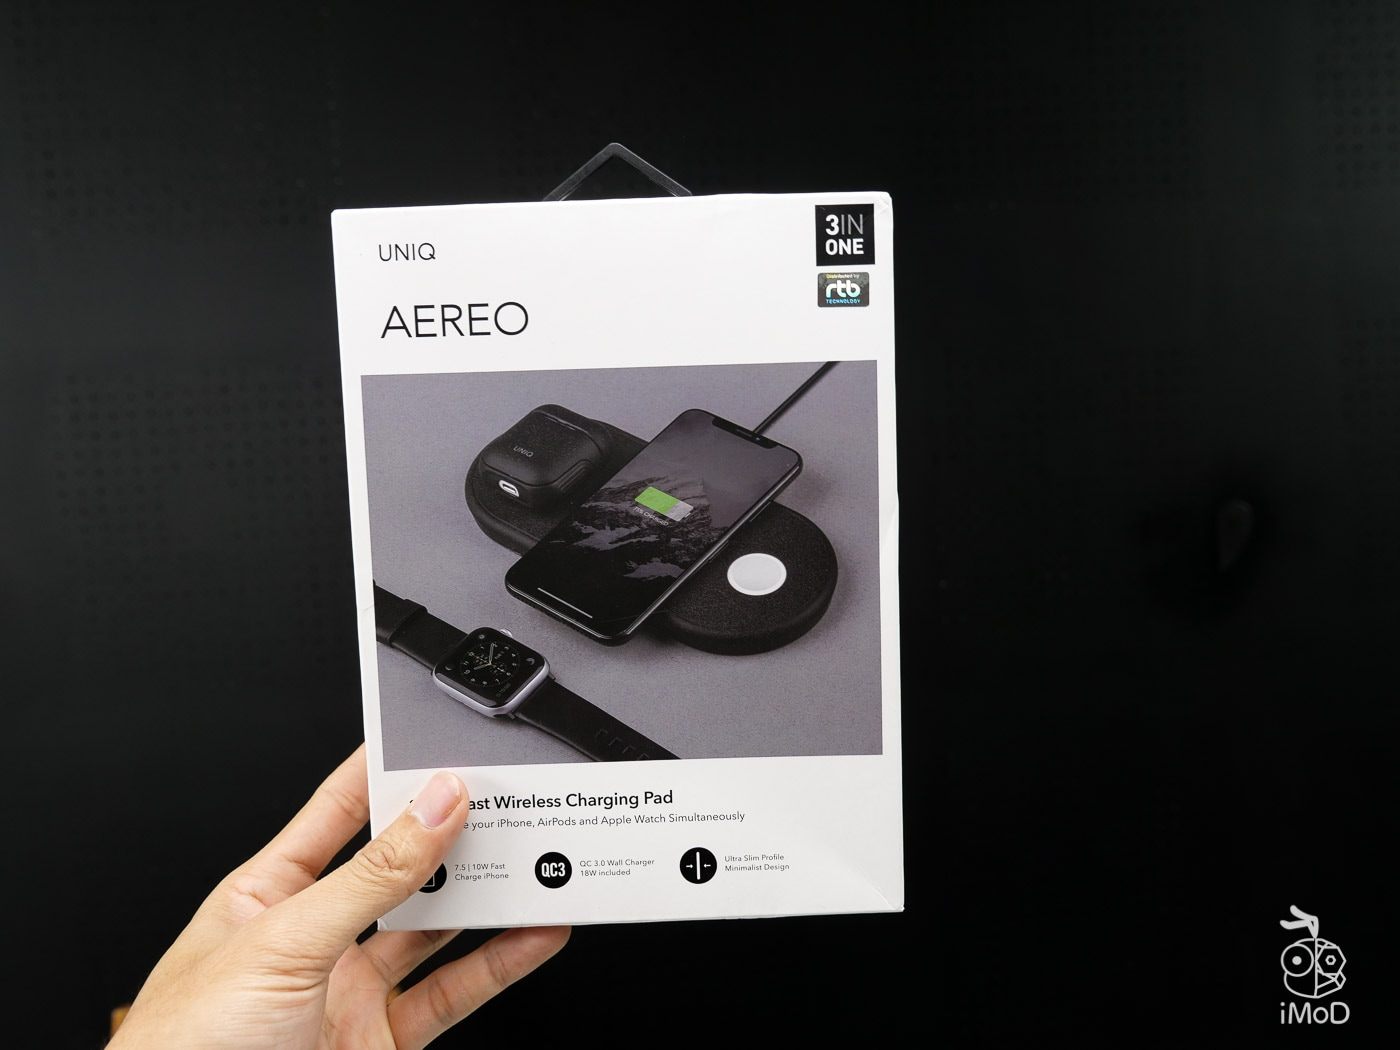 Uniq Aereo 3 In 1 Wireless Charging Pad Review 1299789